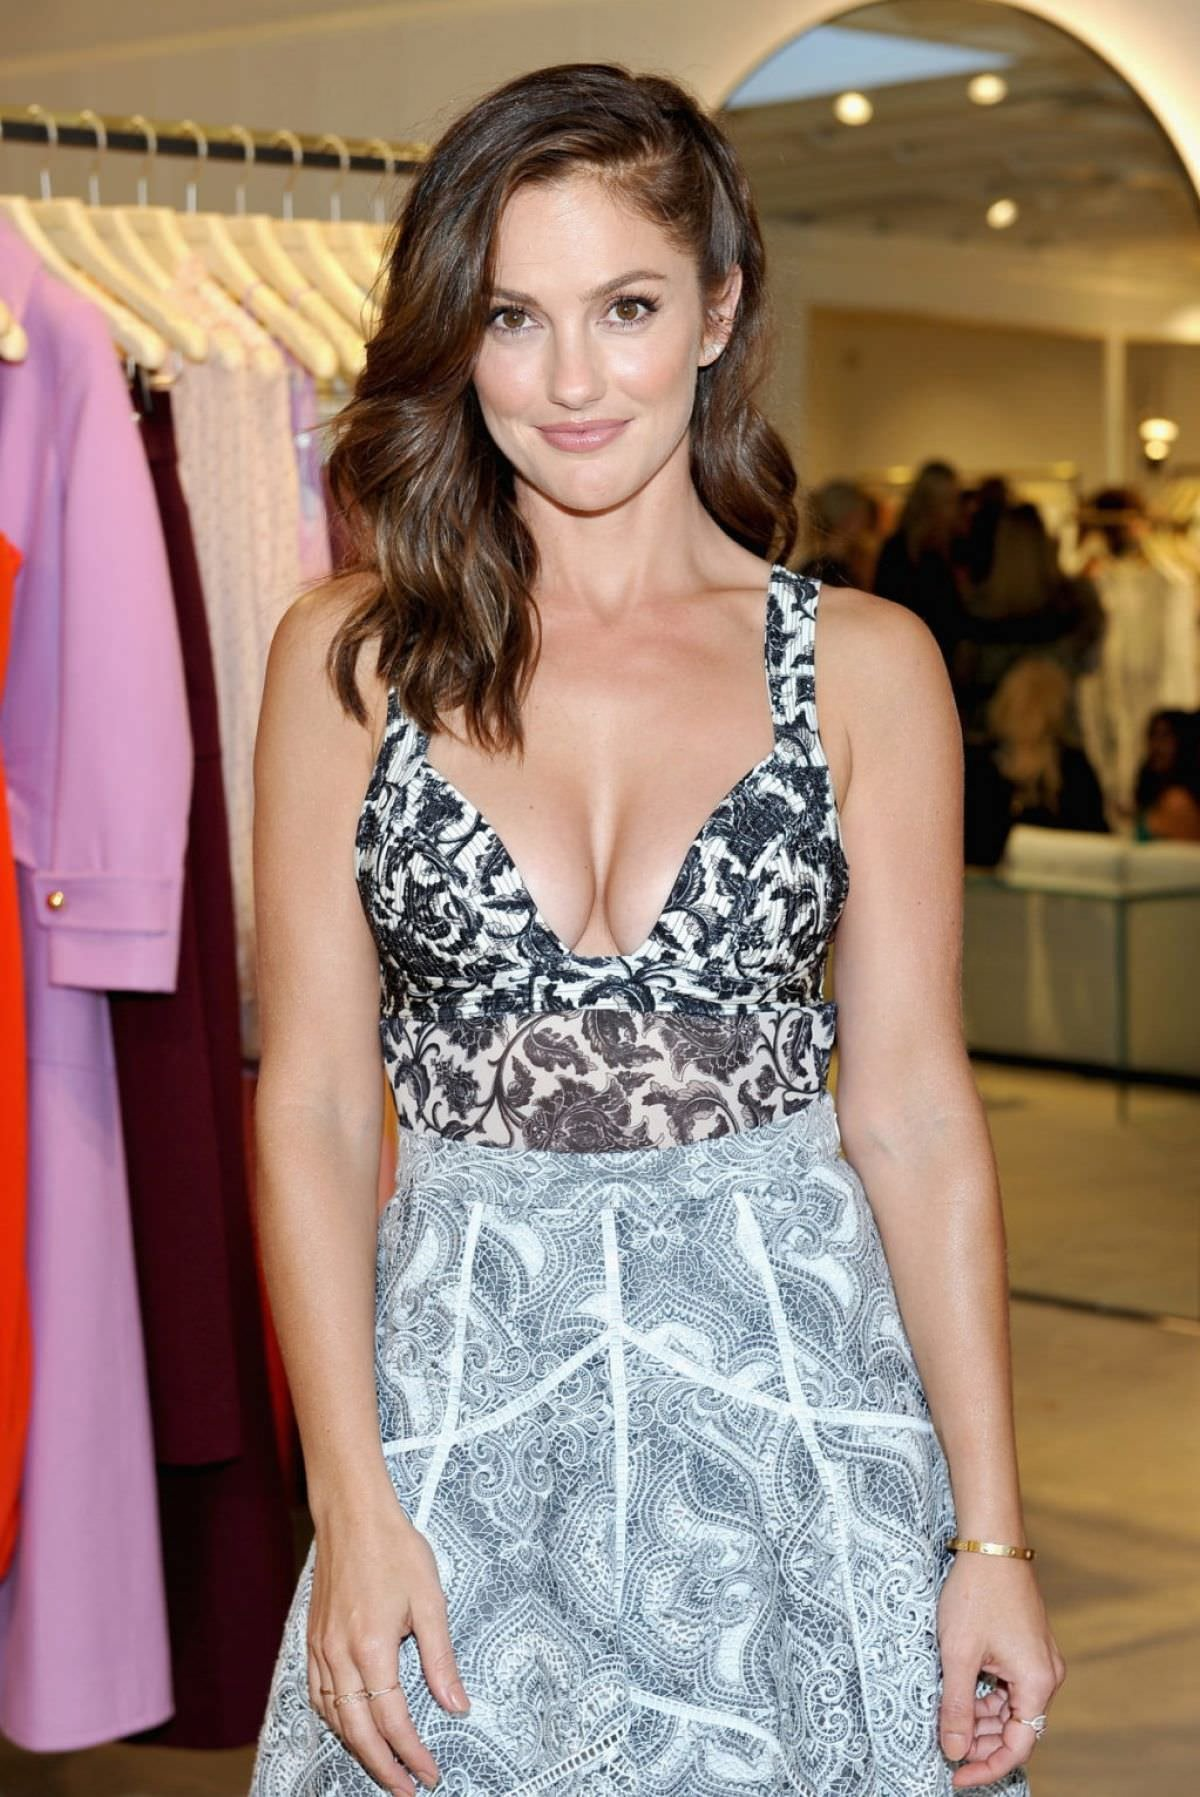 minka kelly cleavage pics